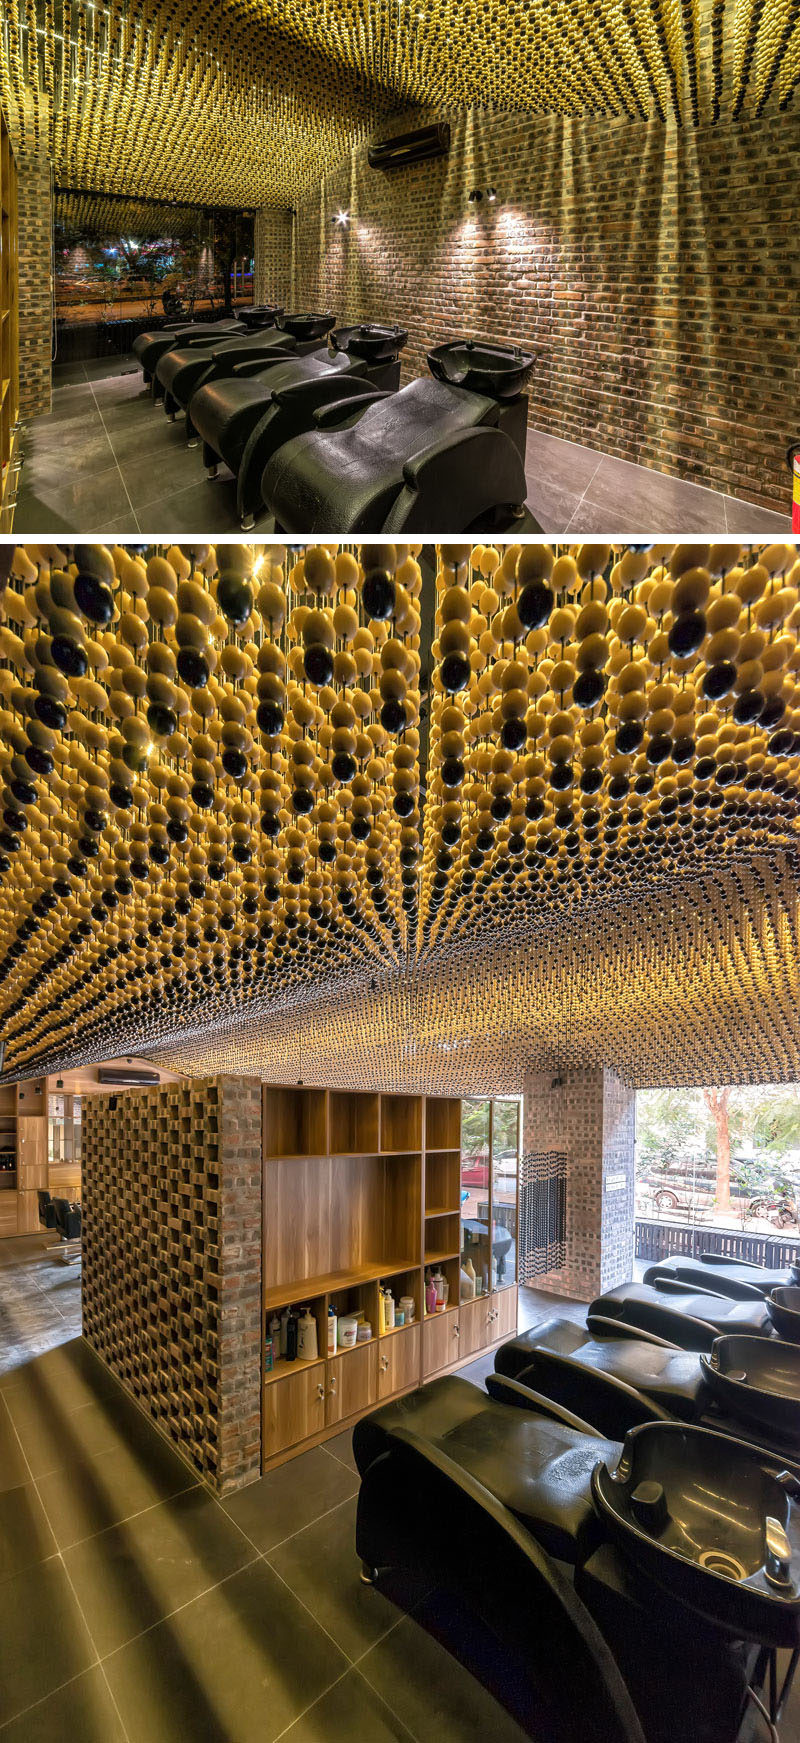 Ceiling Design Ideas - 200,000 Wood Beads Cover The Ceiling In This Hair Salon